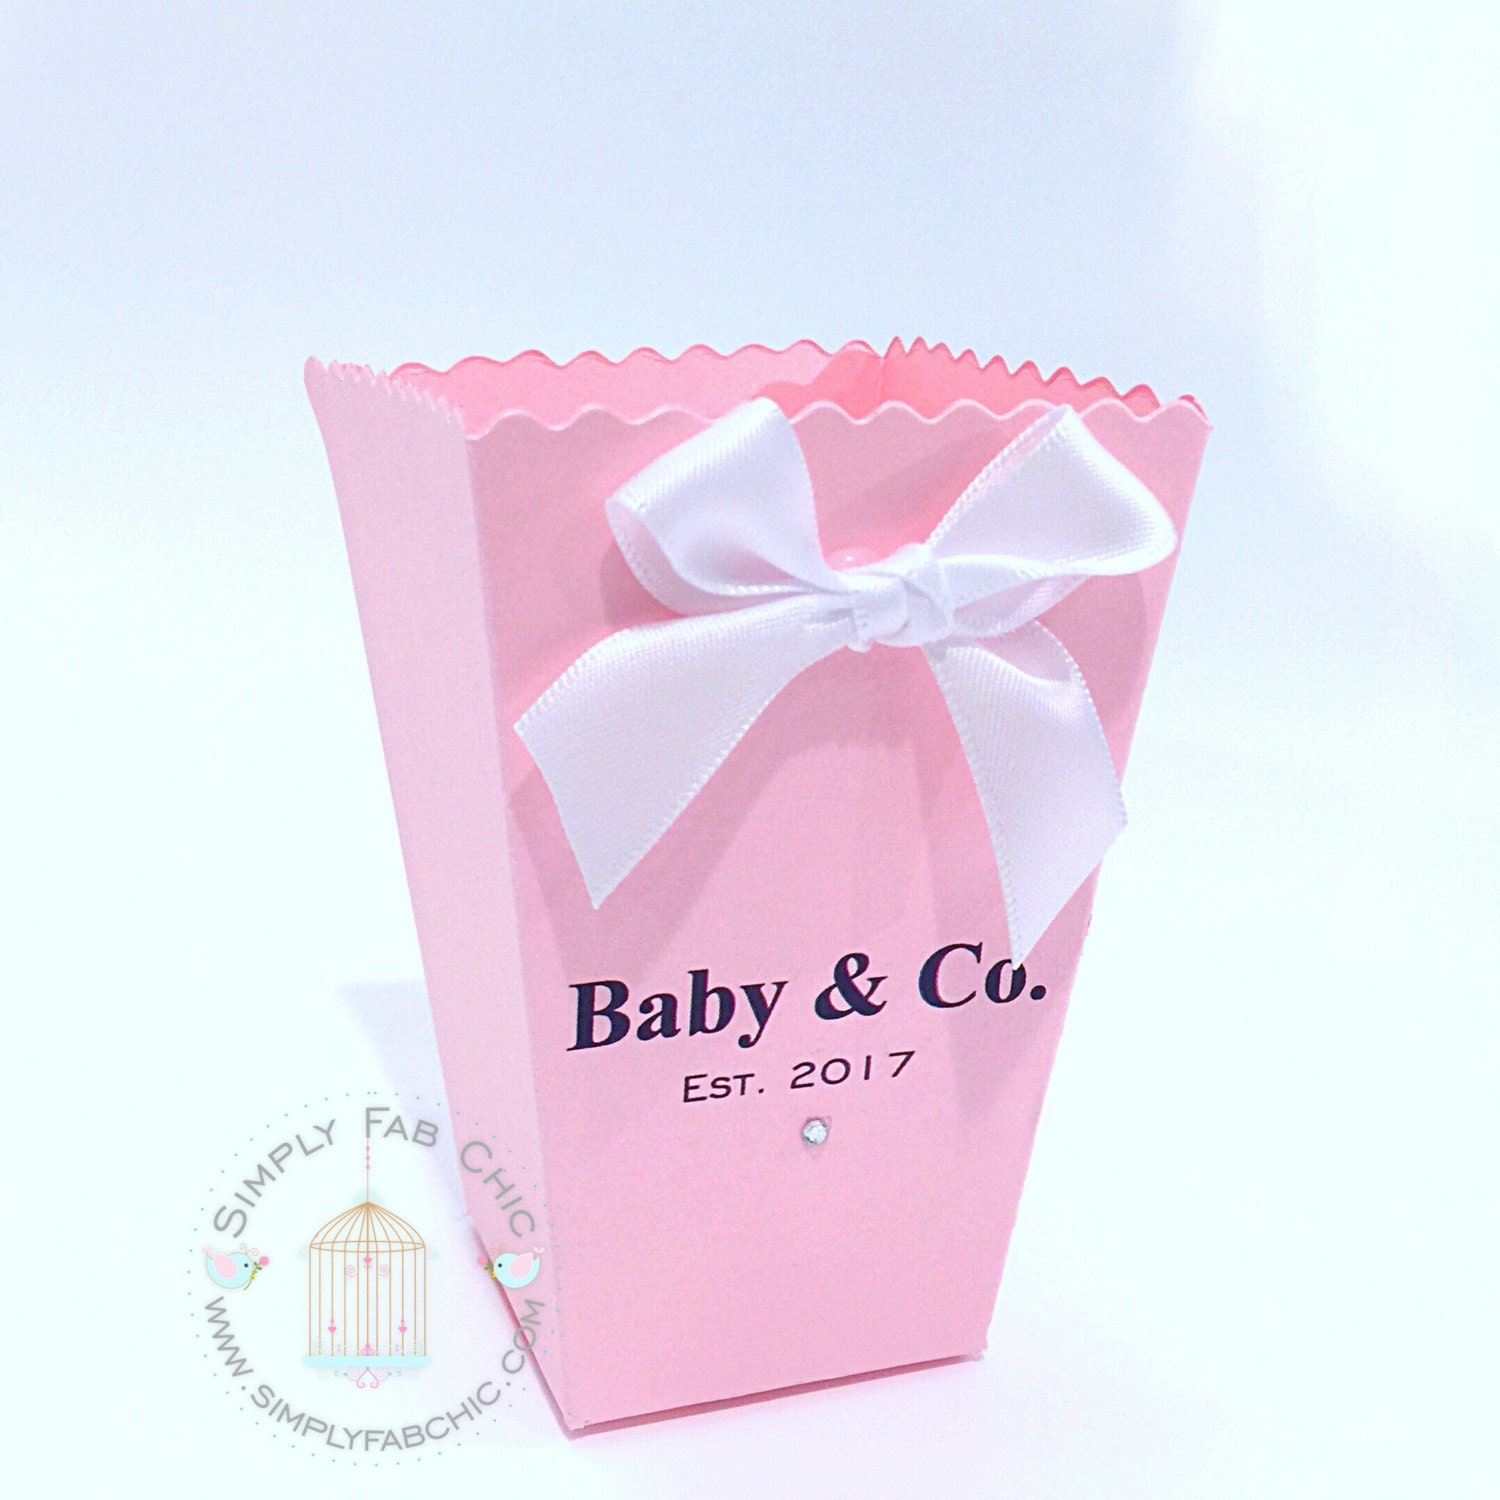 Baby & Co Popcorn Box Favor Boxes Set of 10 Treat Favors